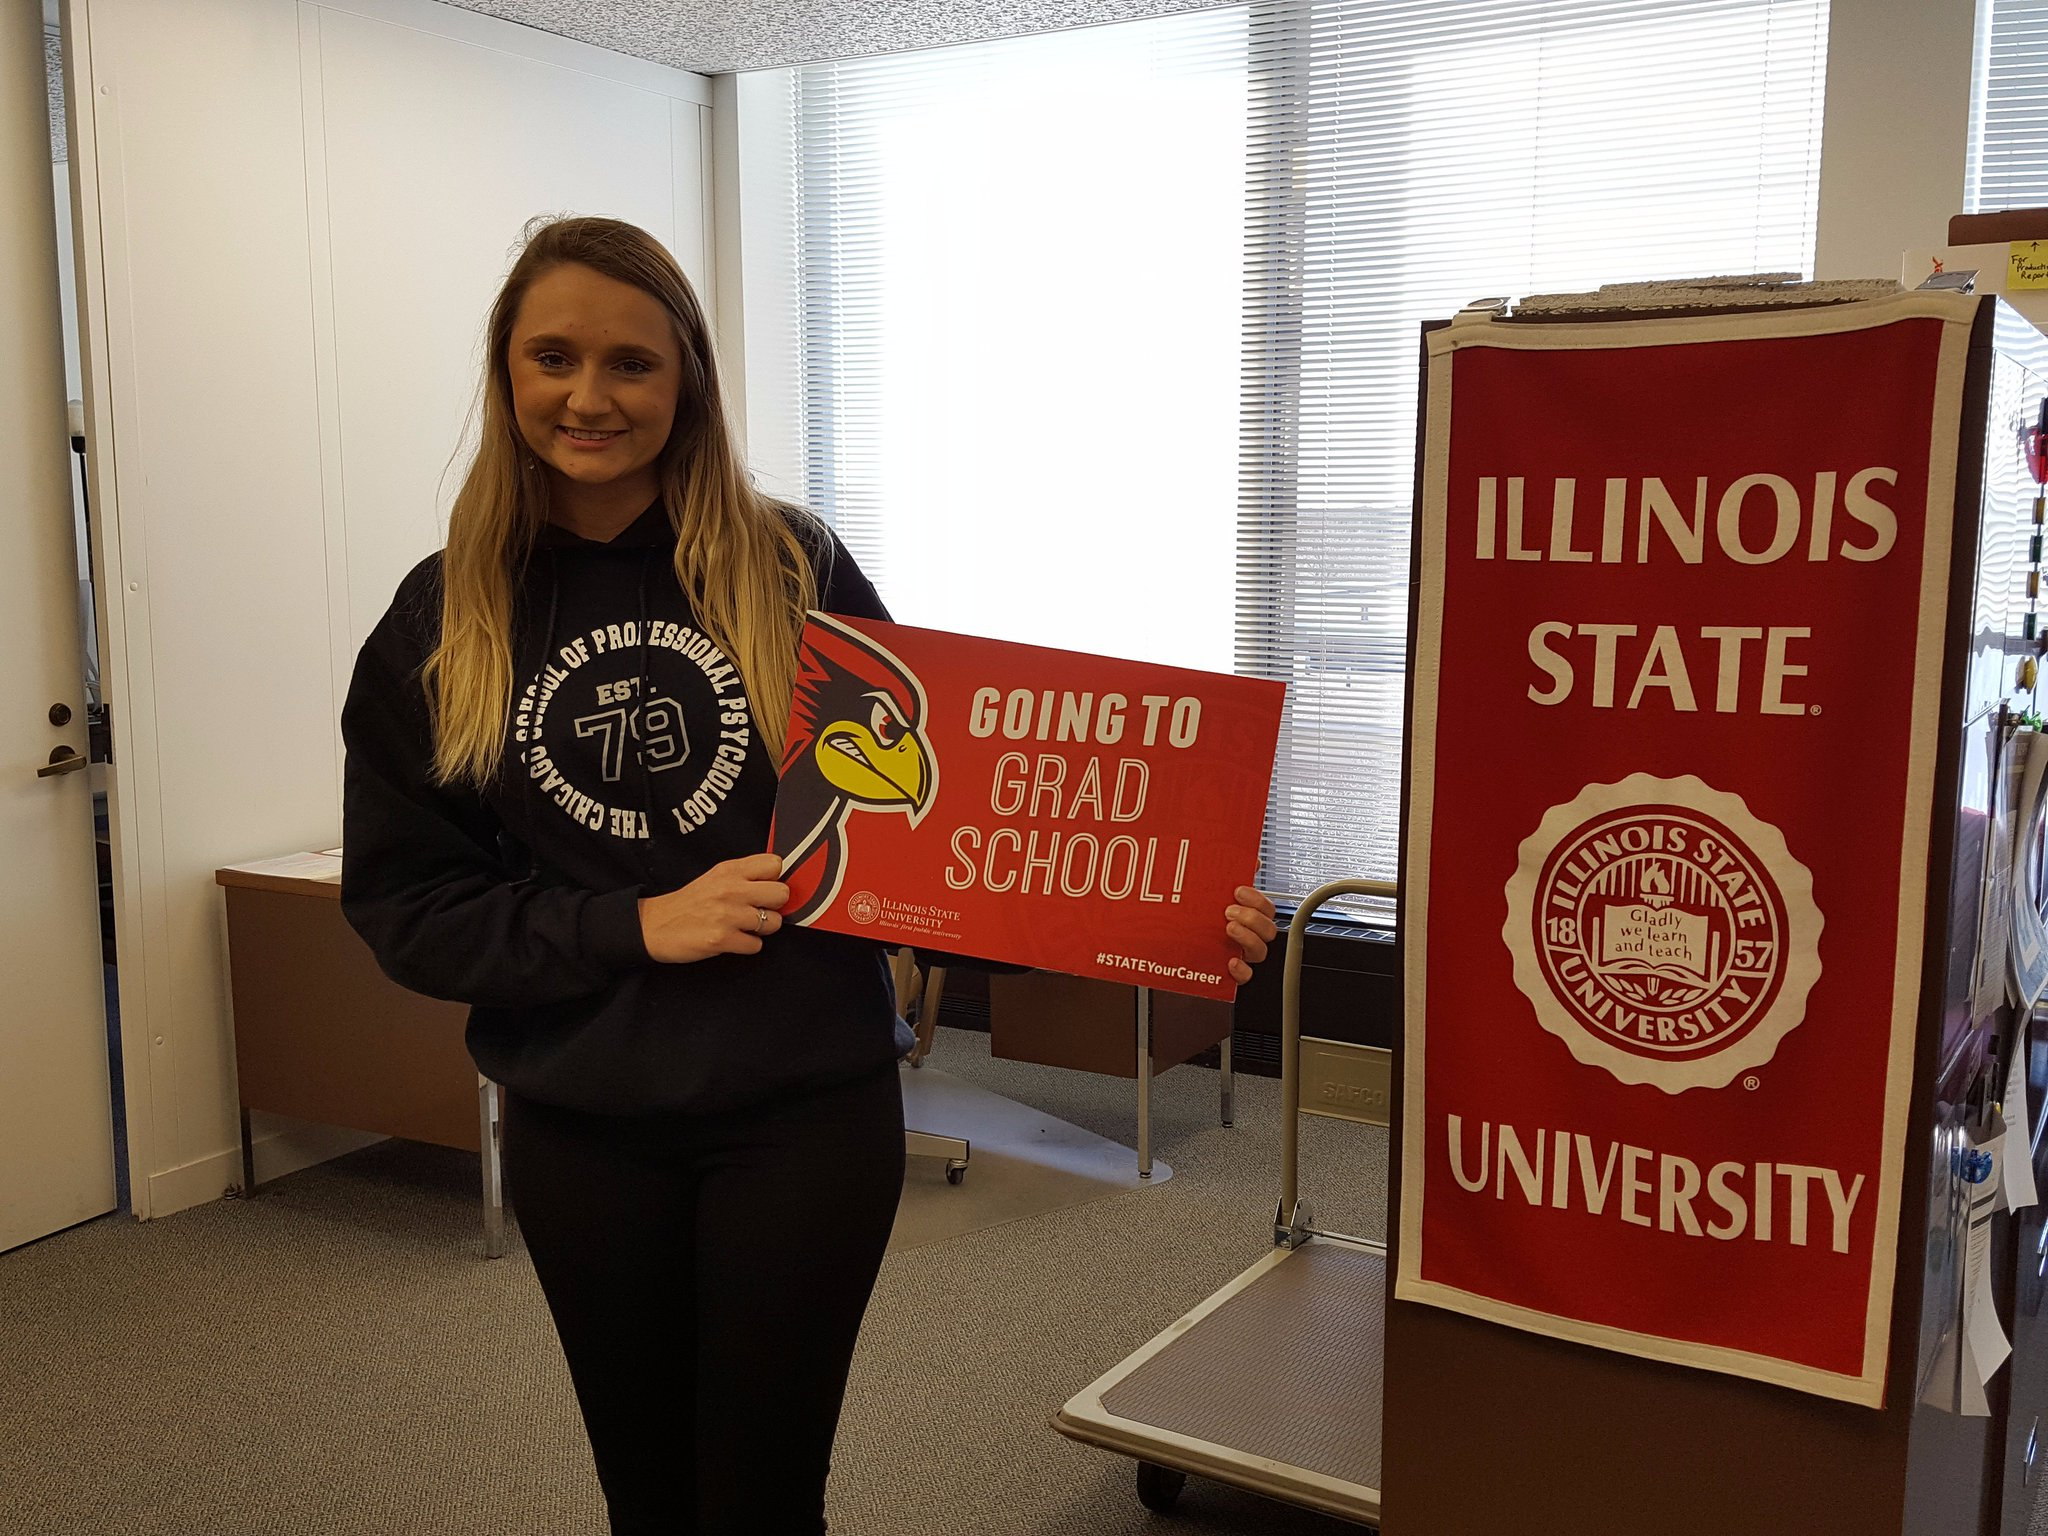 Congrats to @KatRuehle, who will be pursuing her EdS in School Psychology at The Chicago School of Professional Psychology! #STATEYourCareer https://t.co/sfTd5tMwNY